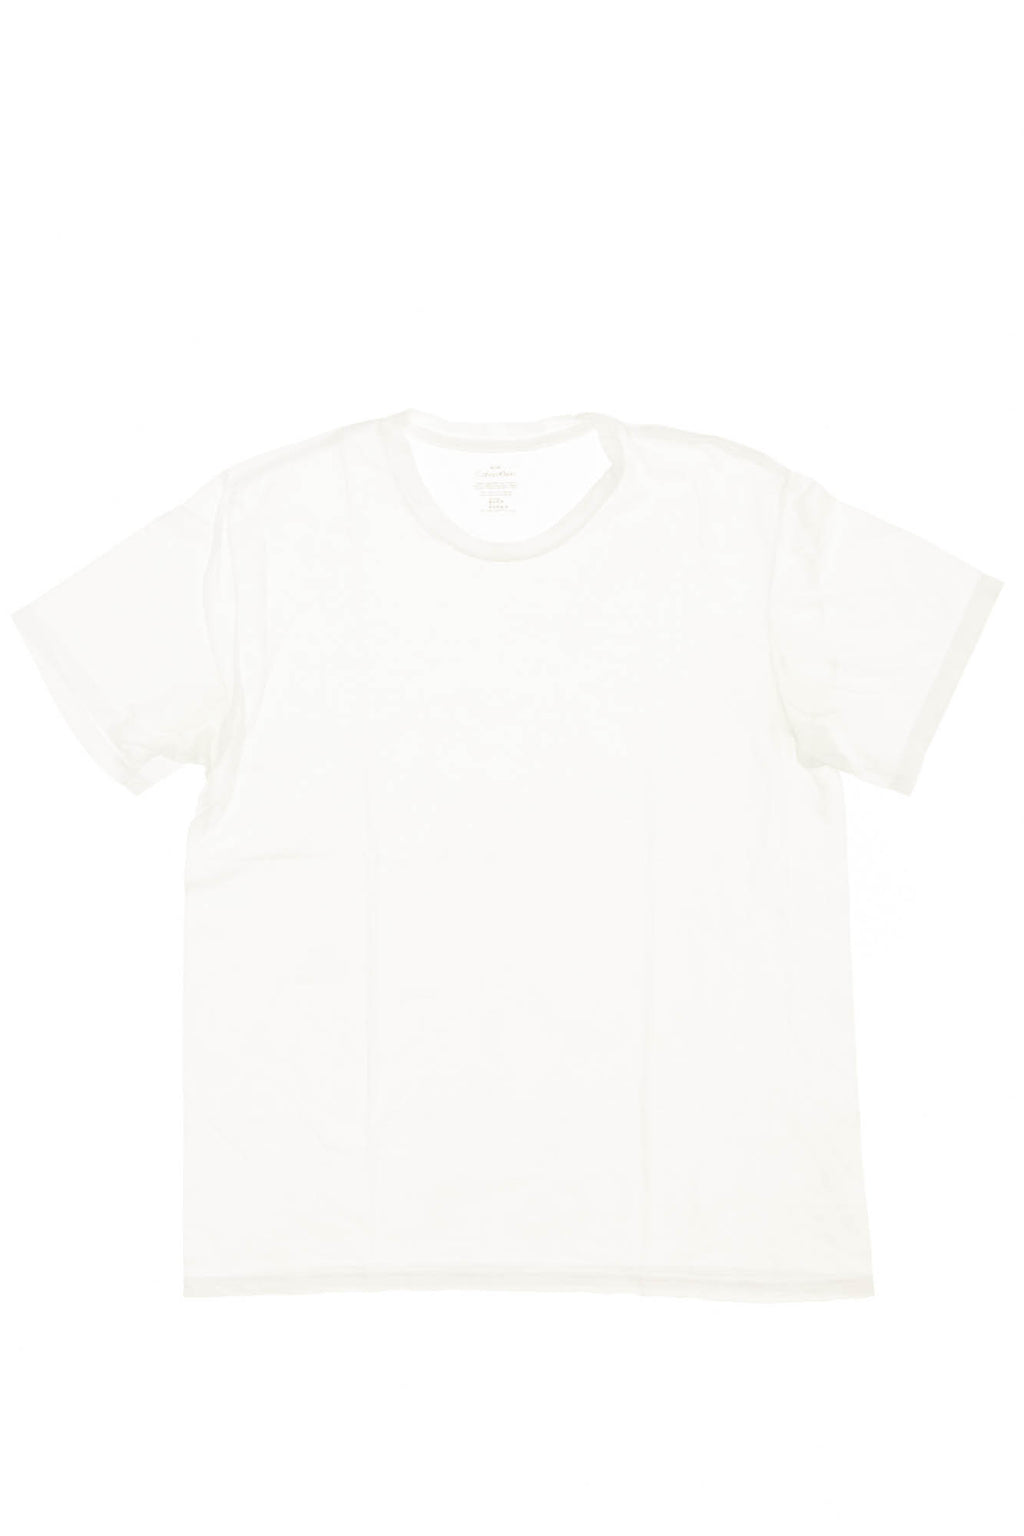 Calvin Klein - White Short Sleeve T Shirt - M